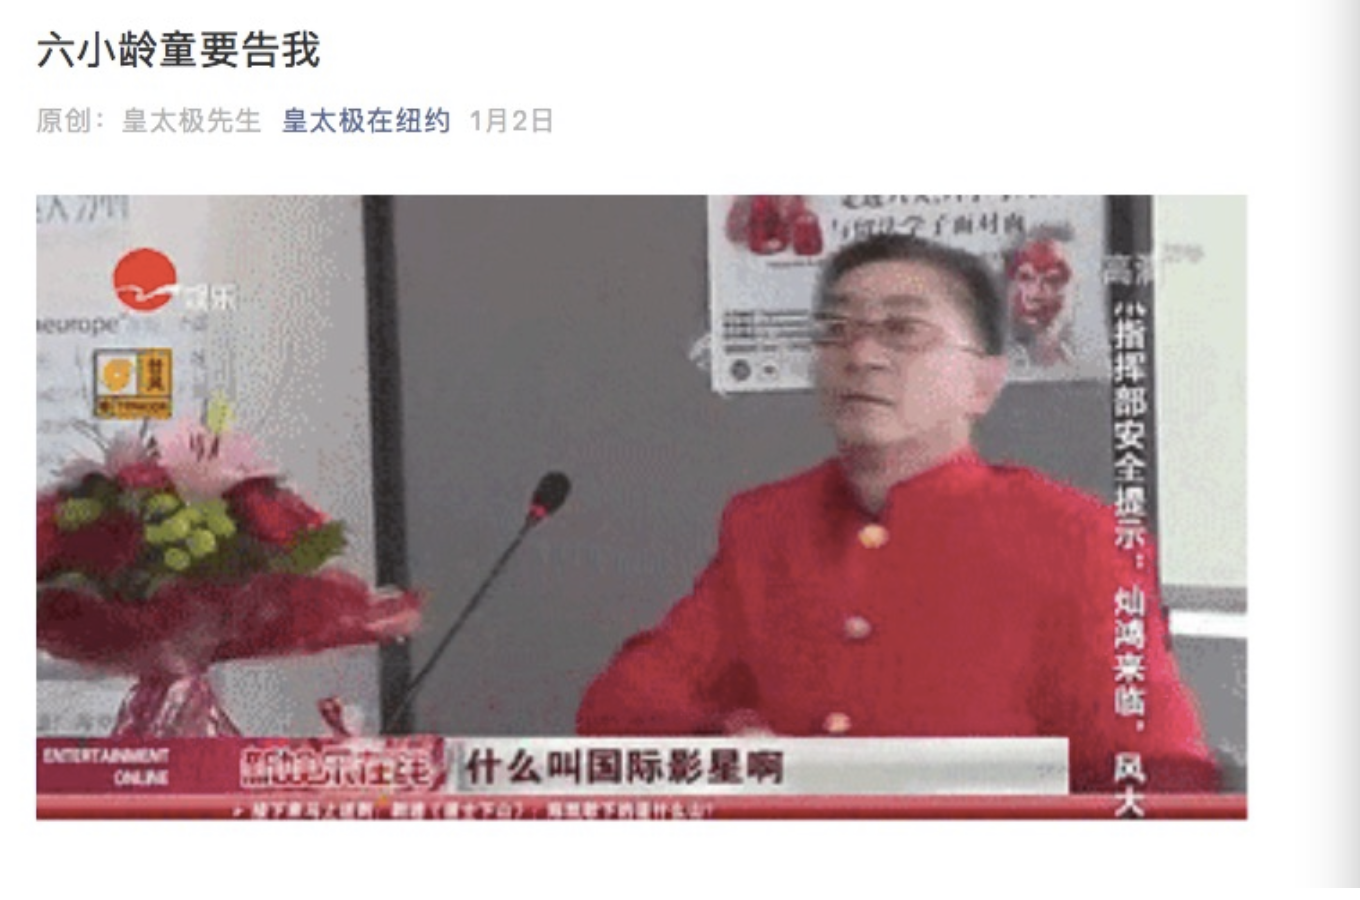 PNG图像 3.png